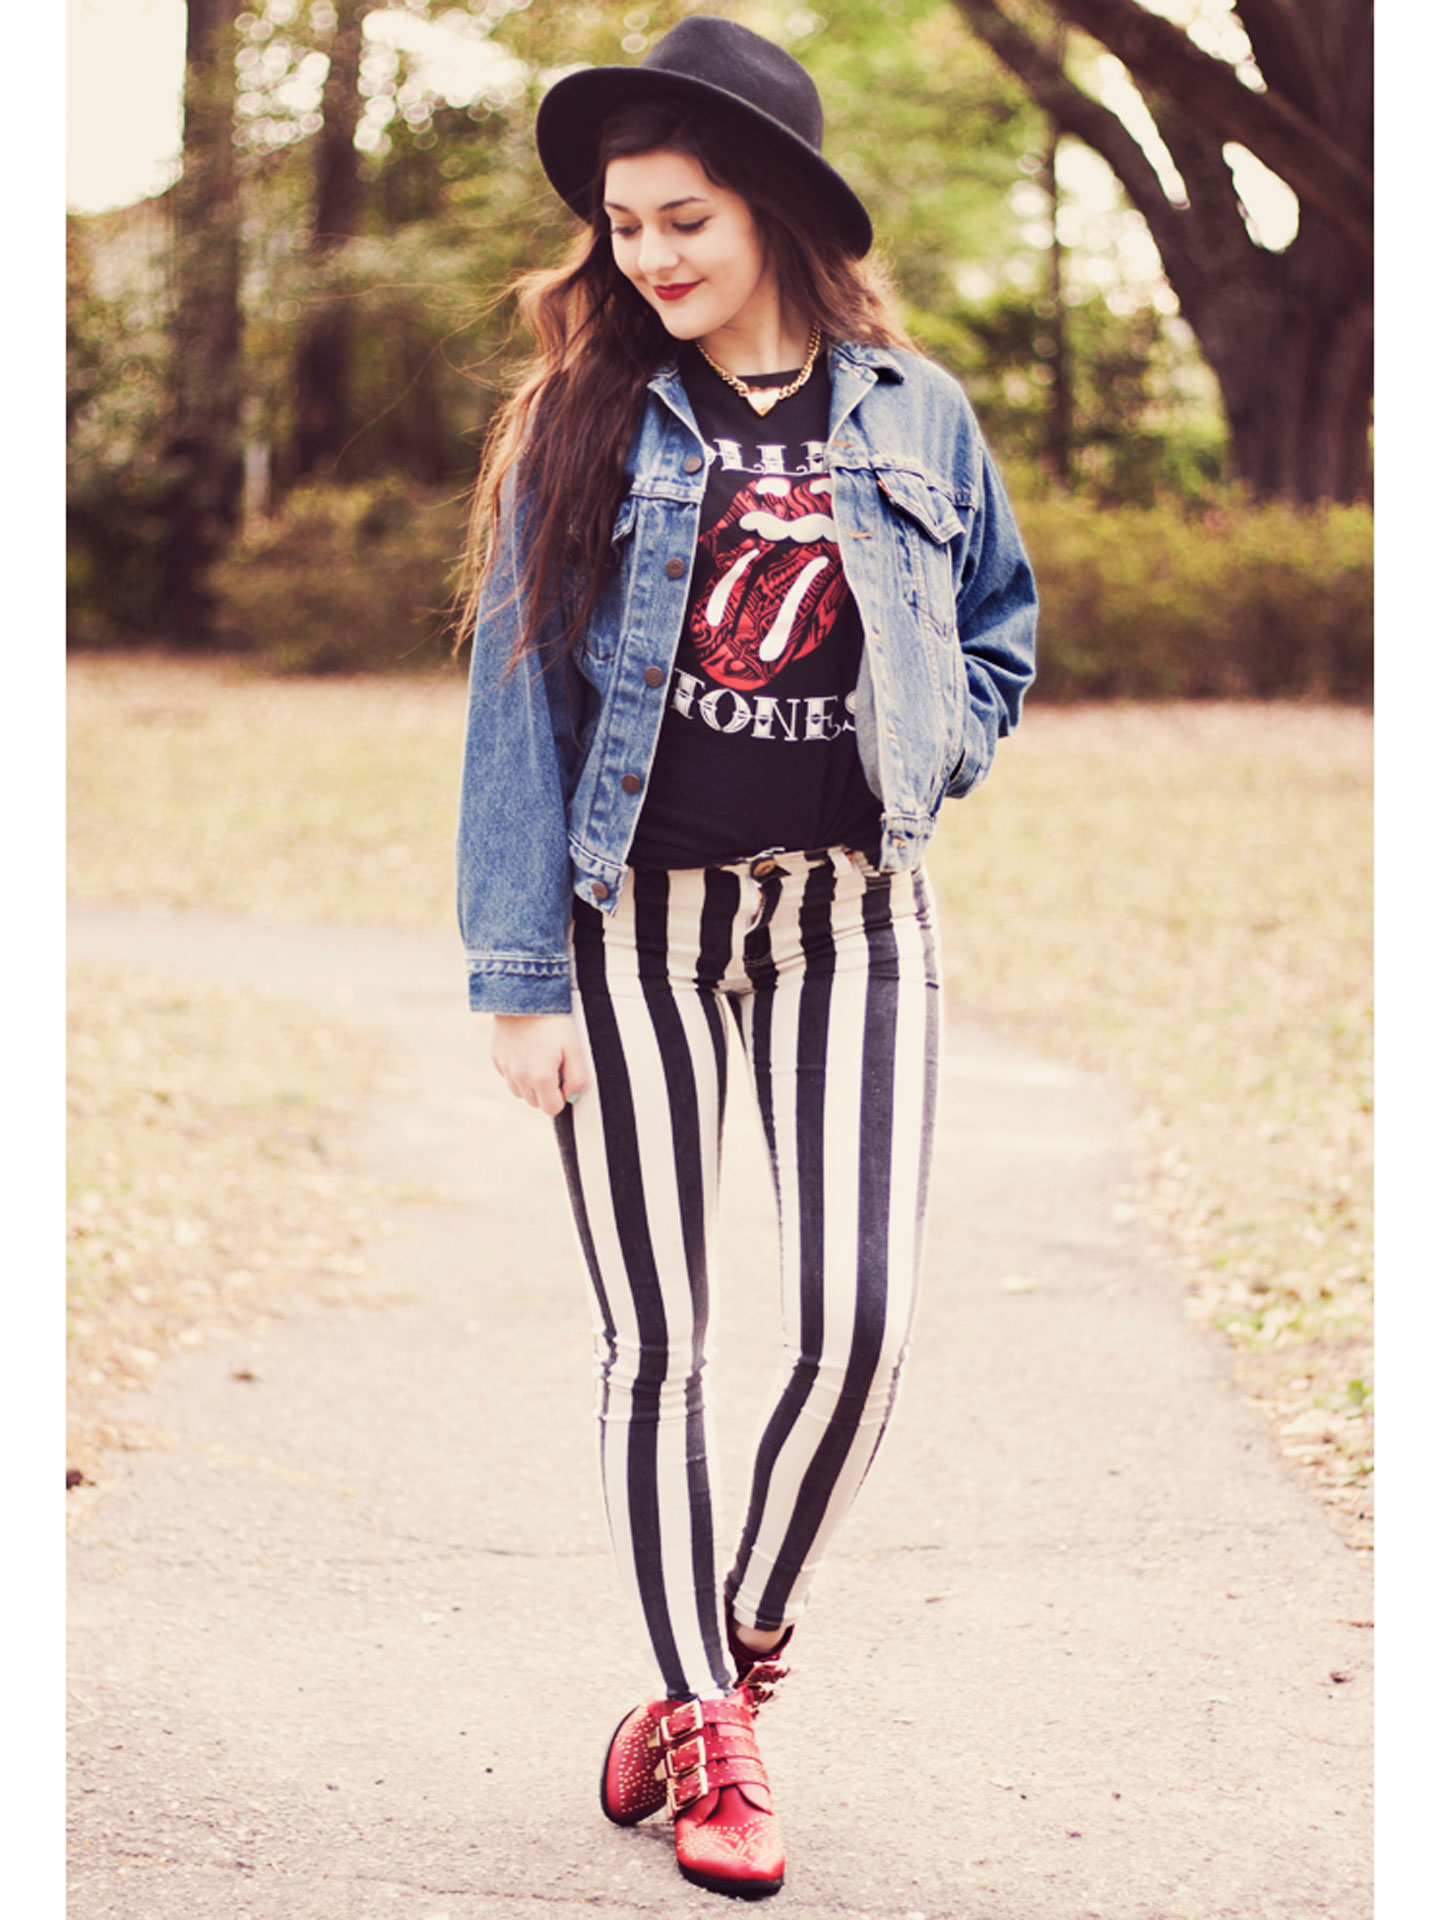 How To Wear Graphic Tee Shirts